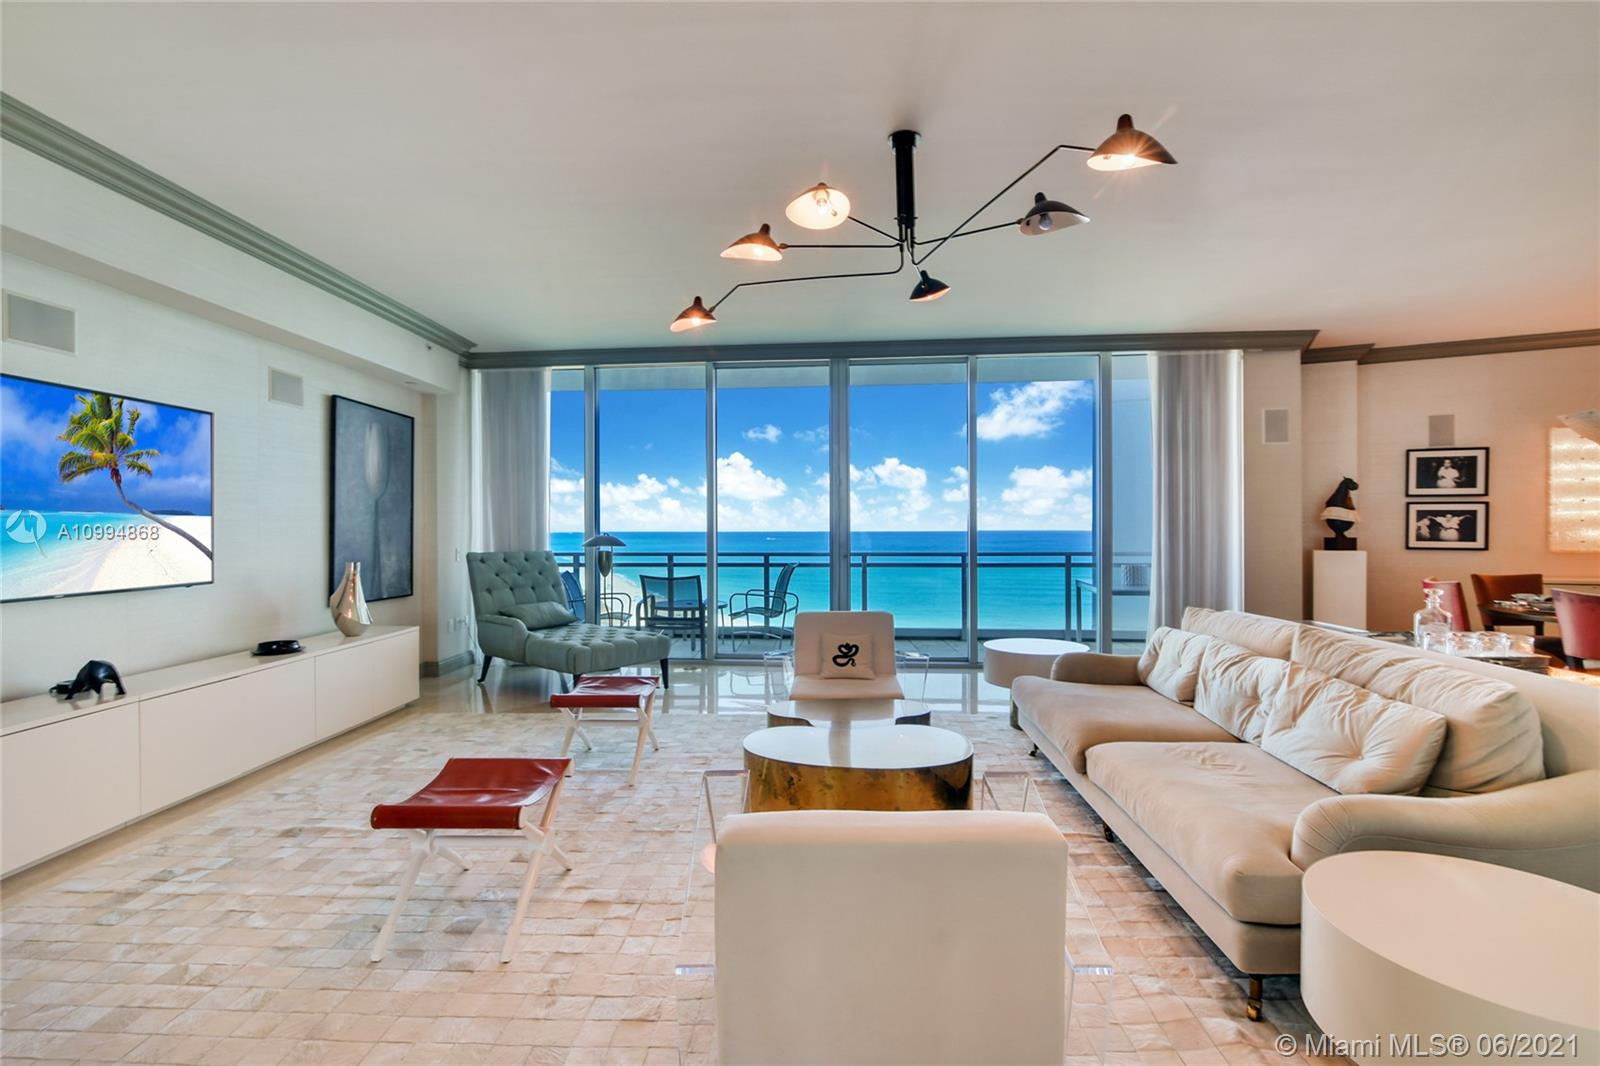 NEW ON THE MARKET ! BREATHTAKING PANORAMIC DIRECT OCEAN, INTRACOASTAL & MIAMI SKYLINE VIEWS!  3 BEDROOMS /3.5 BATHS UNIT AT THE MOST PRESTIGIUSE ONE BAL HARBOUR /RITZ CARLTON RESIDENCES WITH A PRIVATE FOYER ENTRY. 3 TERRACES WITH SUNRISE & SUNSETS VIEWS ,OPEN FLOOR PLAN FOR THE ENTERTAINMENT ,10 FEET CEILING ,MASTER SUITE W/ SITTING AREA,  WALKING CLOSETS & BALCONY OVERLOOKING INTRACOASTAL WATER VIEWS & DOWNTOWN MIAMI SKYLINE . GOURMET KITCHEN W/ GAS STOVE WOLF APPLIANCES MIELE BUILT IN COFFEE MACHINE LAUNDRY ROOM ASSIGNED PARKING STORAGE 5 STAR BUILDING AMENITIES FULL BEACH & POOL SERVICES GYM ,STEAM ROOM THEATER SOCIAL ROOM RESIDENTIAL CONCIERGE SERVICES,24 HOURS SECURITY VALET. ACCESS TO THE WORLD-CLASS RITZ CARLTON RESORT AMENITIES, FINE DINING RESTAURANT & SPA.